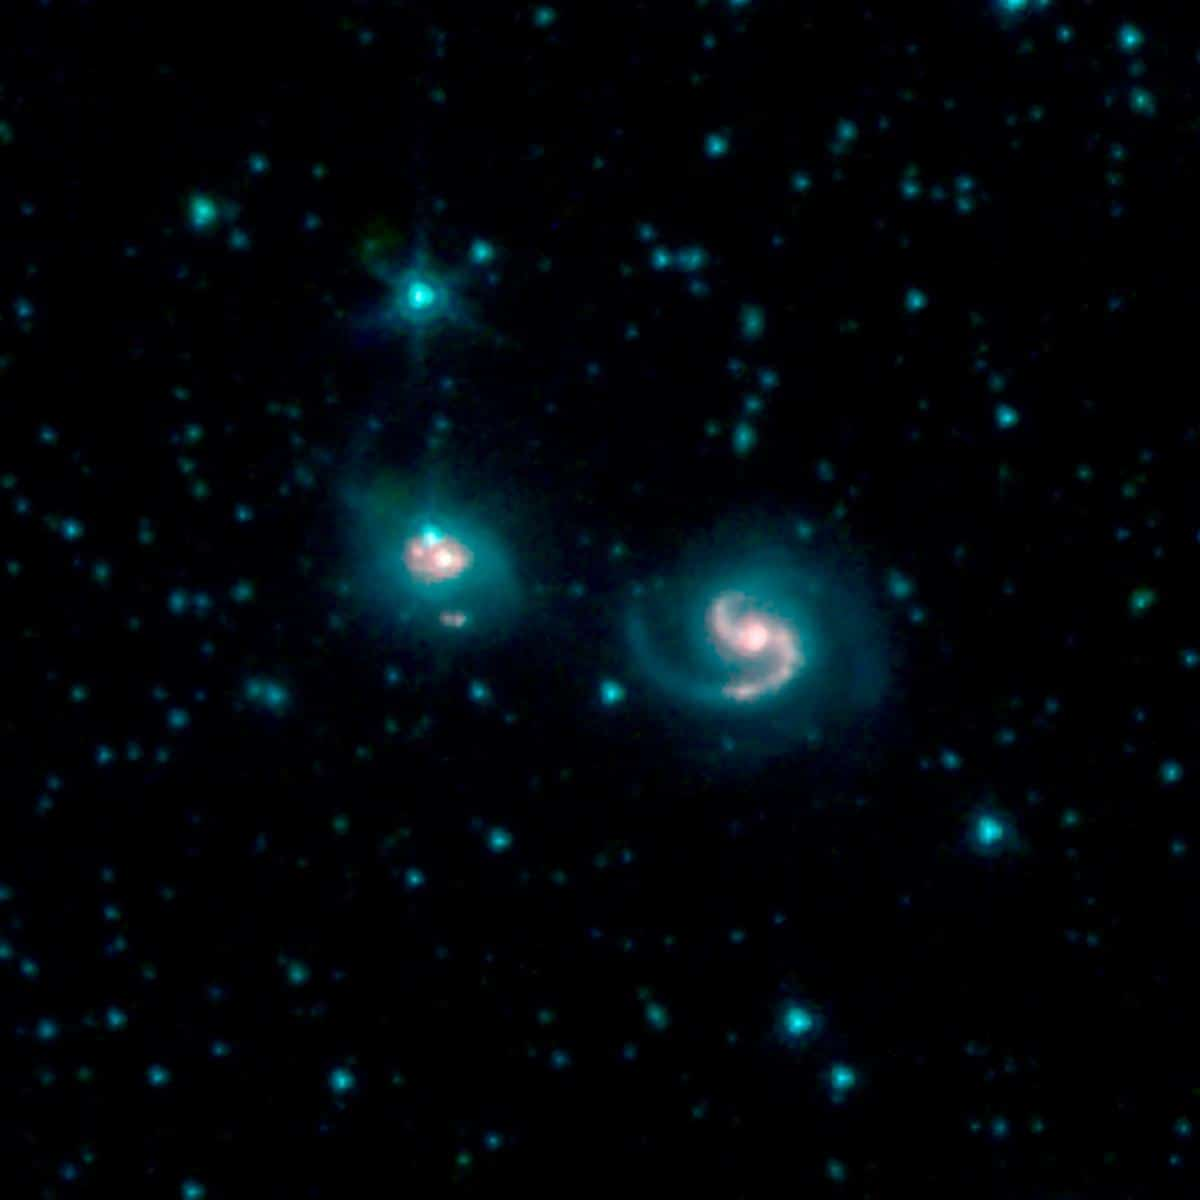 This image shows the merger of two galaxies, known as NGC 6786 (right) and UGC 11415 (left), also collectively called VII Zw 96. It is composed of images from three Spitzer Infrared Array Camera (IRAC) channels: IRAC channel 1 in blue, IRAC channel 2 in green and IRAC channel 3 in red. Credit: NASA/JPL-Caltech